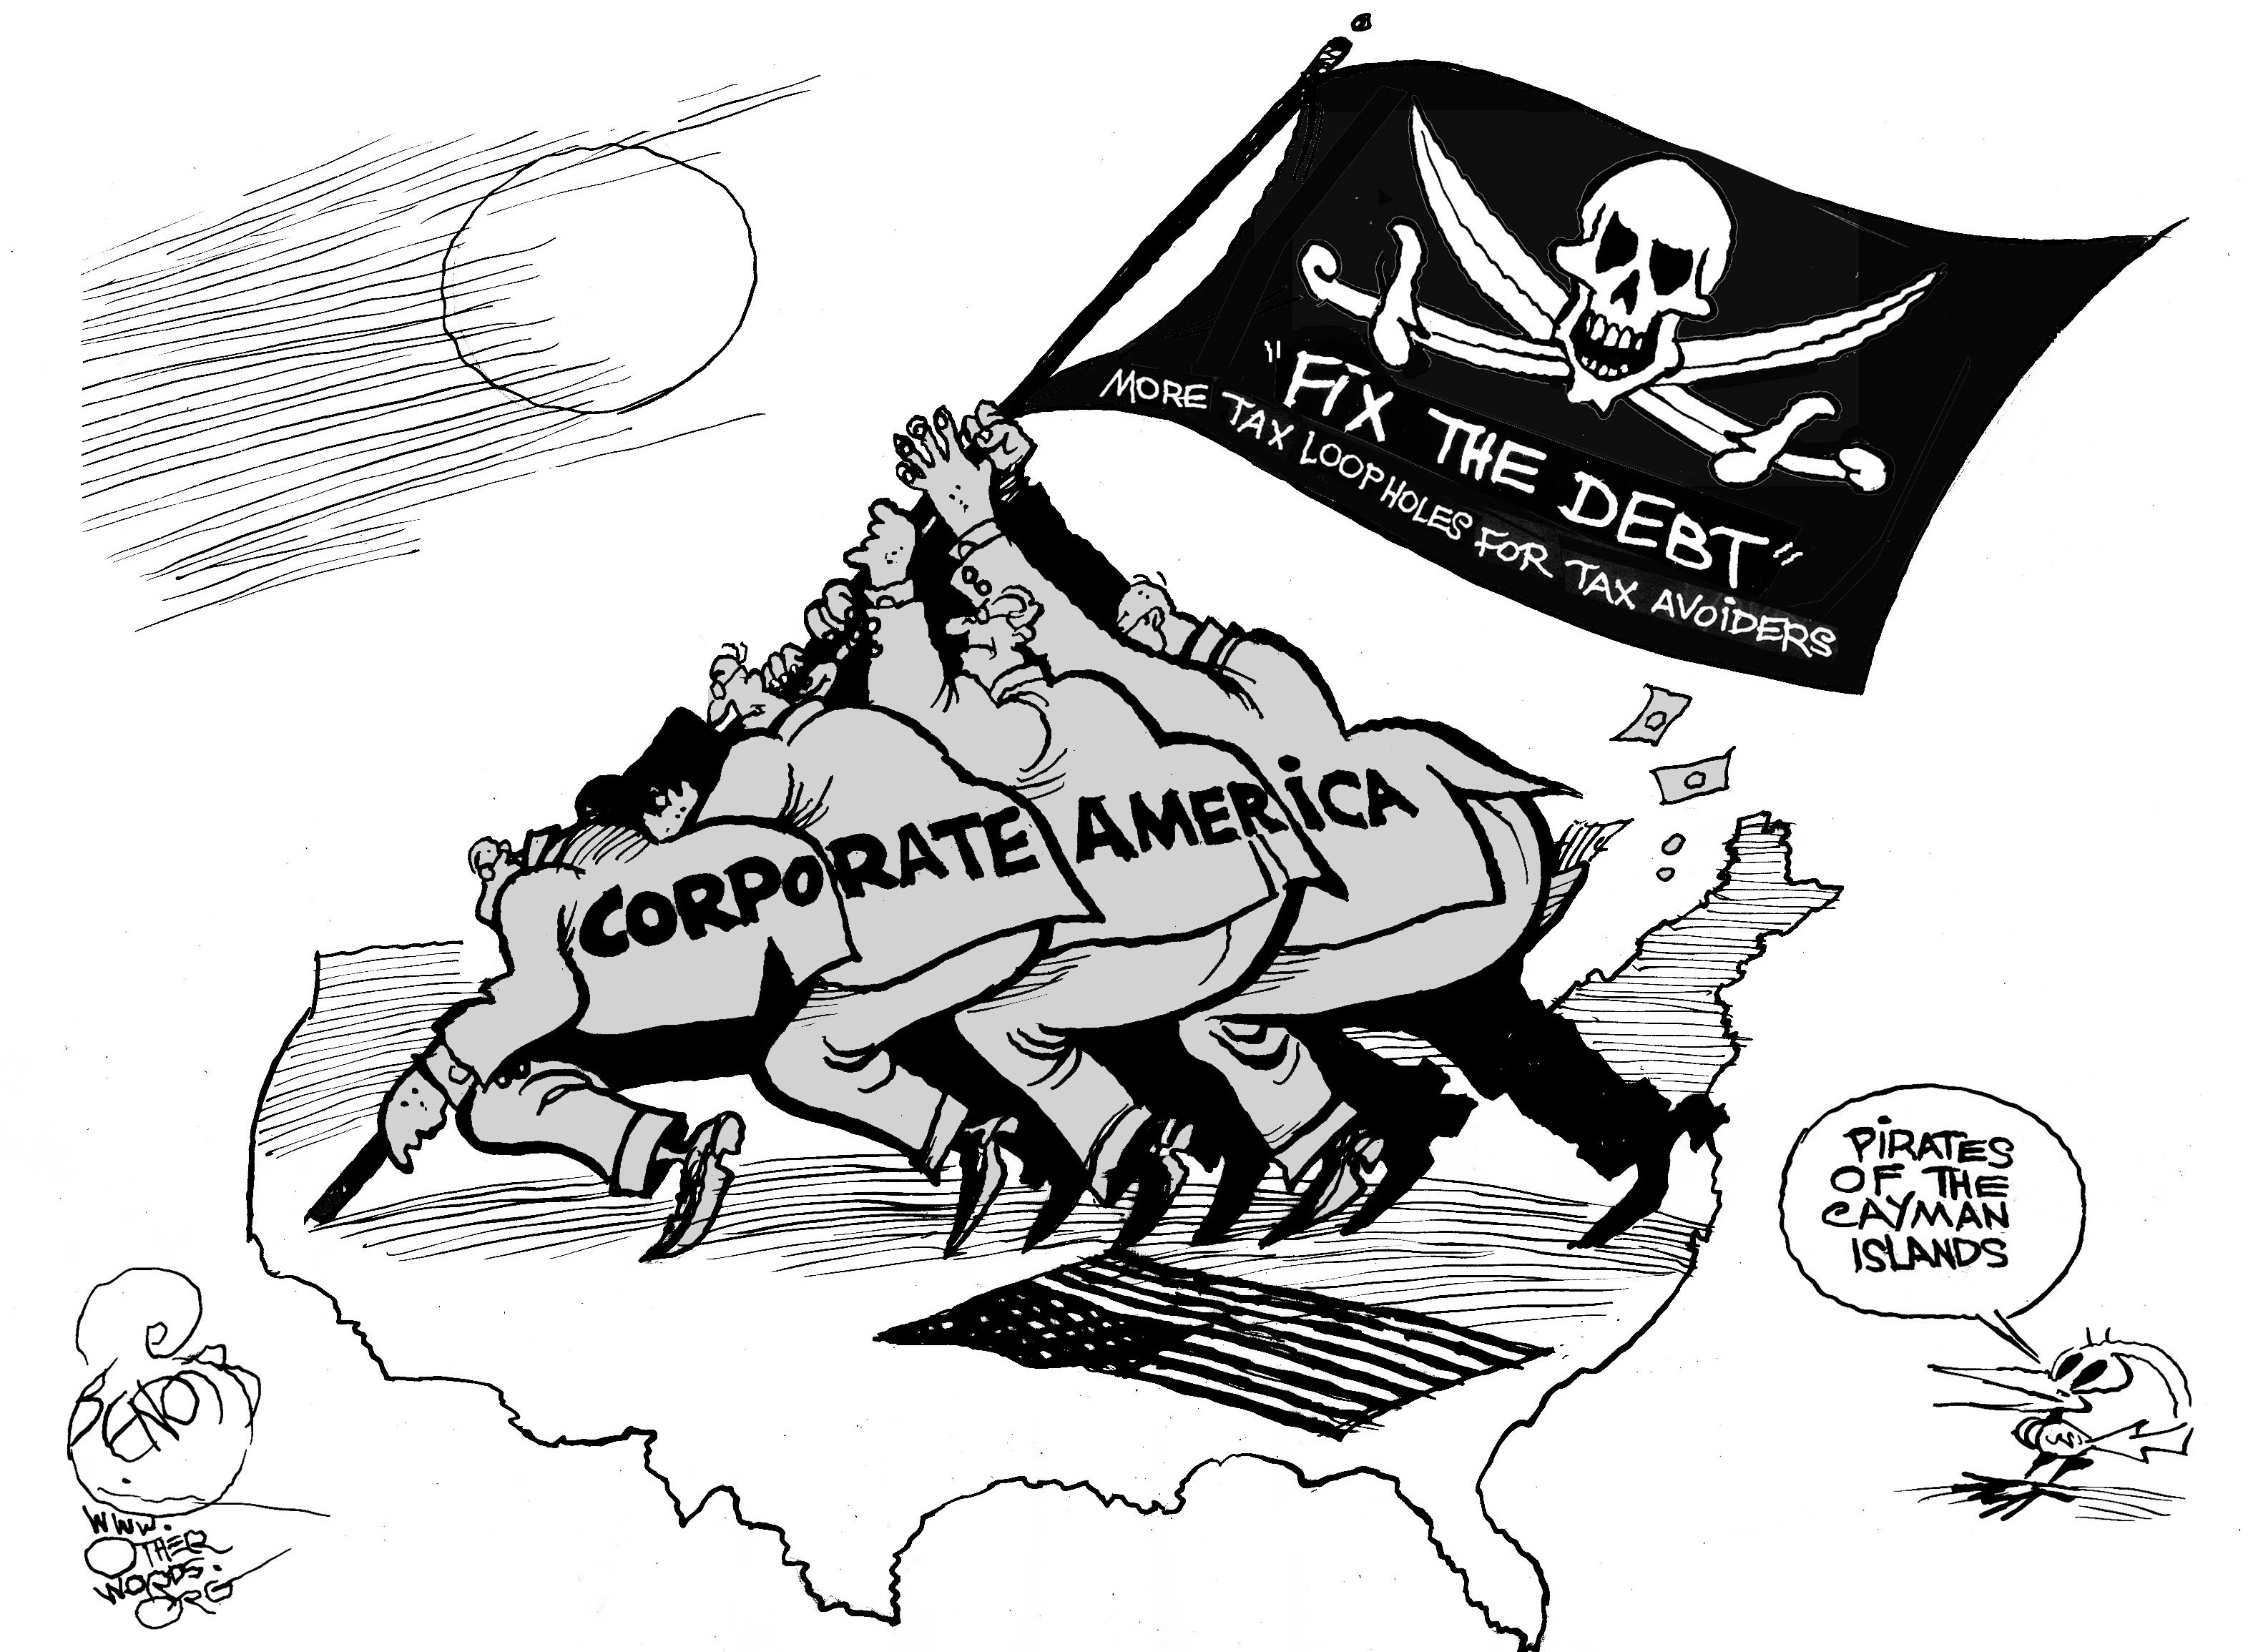 It's Time Corporations Flew Old Glory Instead of the Jolly Roger